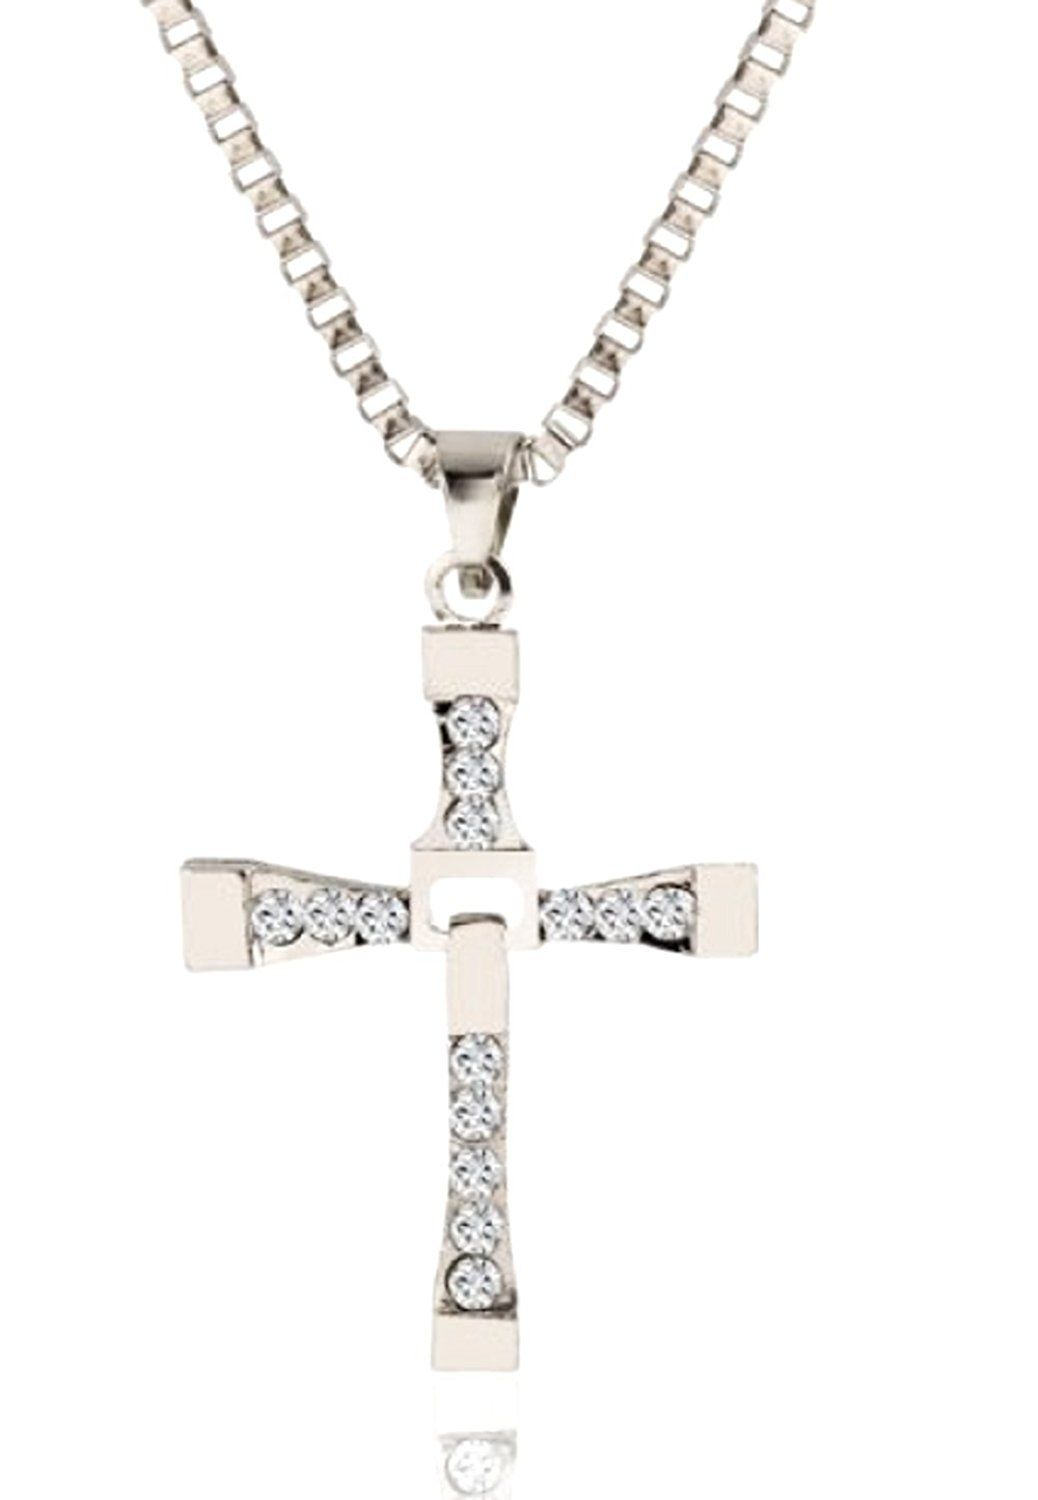 Famous Necklace Movie Fast and Furious Character Vin Diesel Actor ...